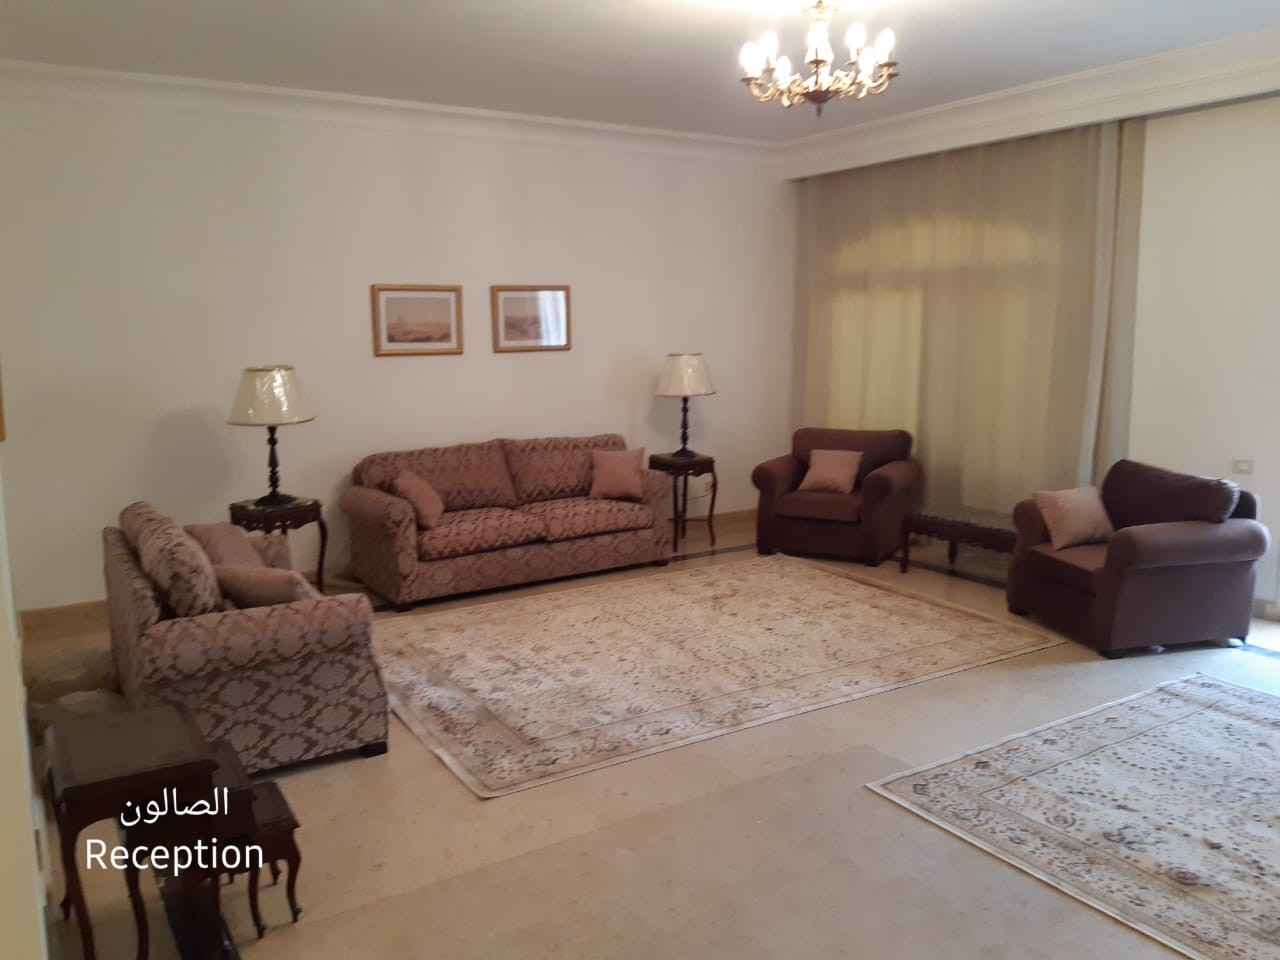 Stunning Furnished Upper Ground Apartment For Rent In West Golf New Cairo - 4891 Featured Image